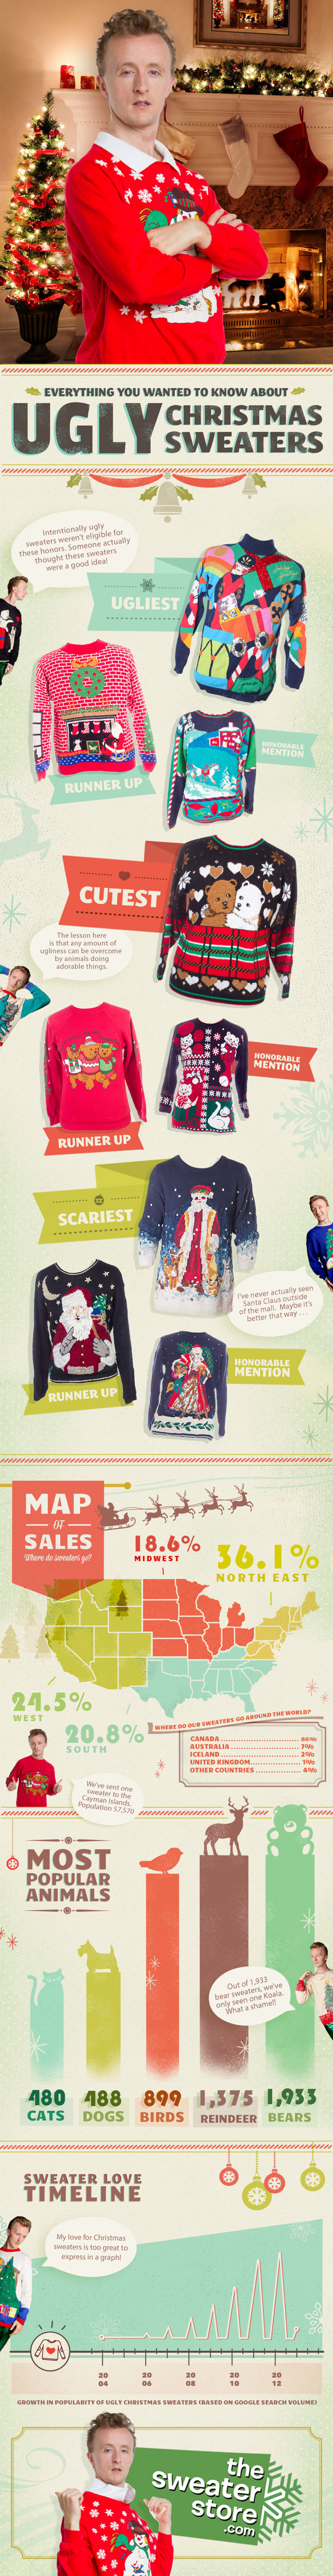 Everything You Wanted To Know About Ugly Christmas Sweaters Infographic